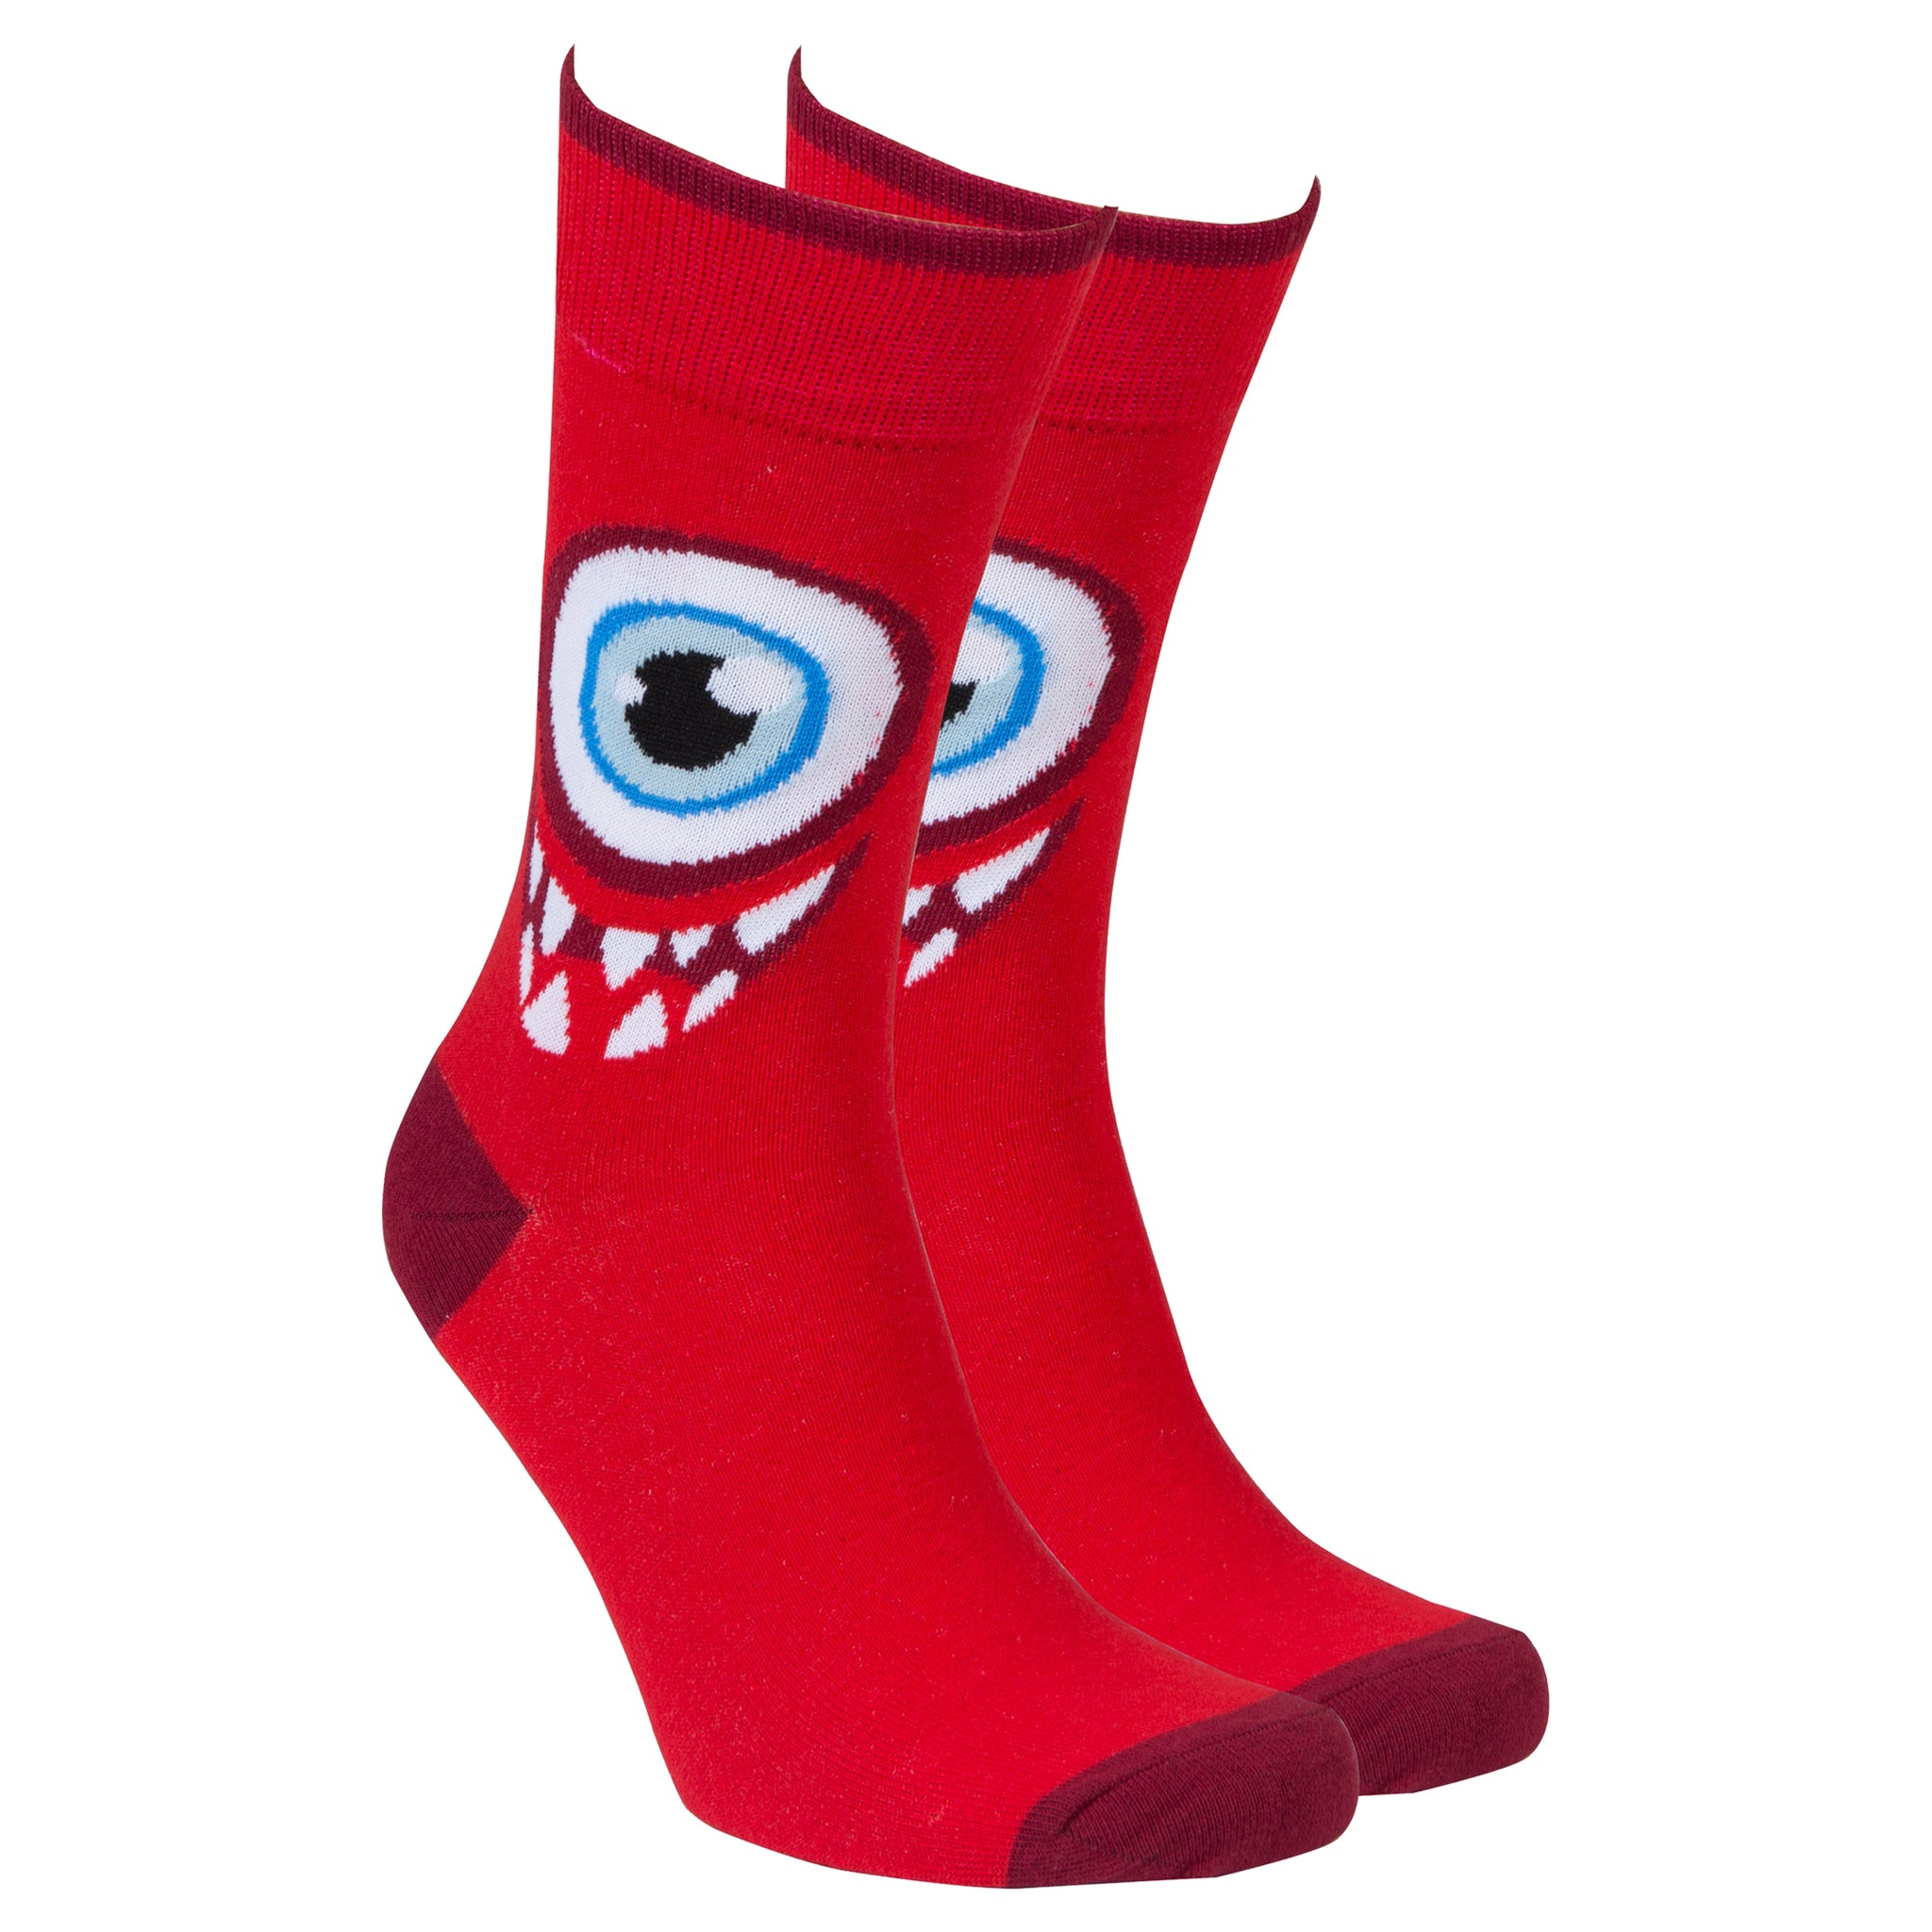 Men's One Eye Monster Socks